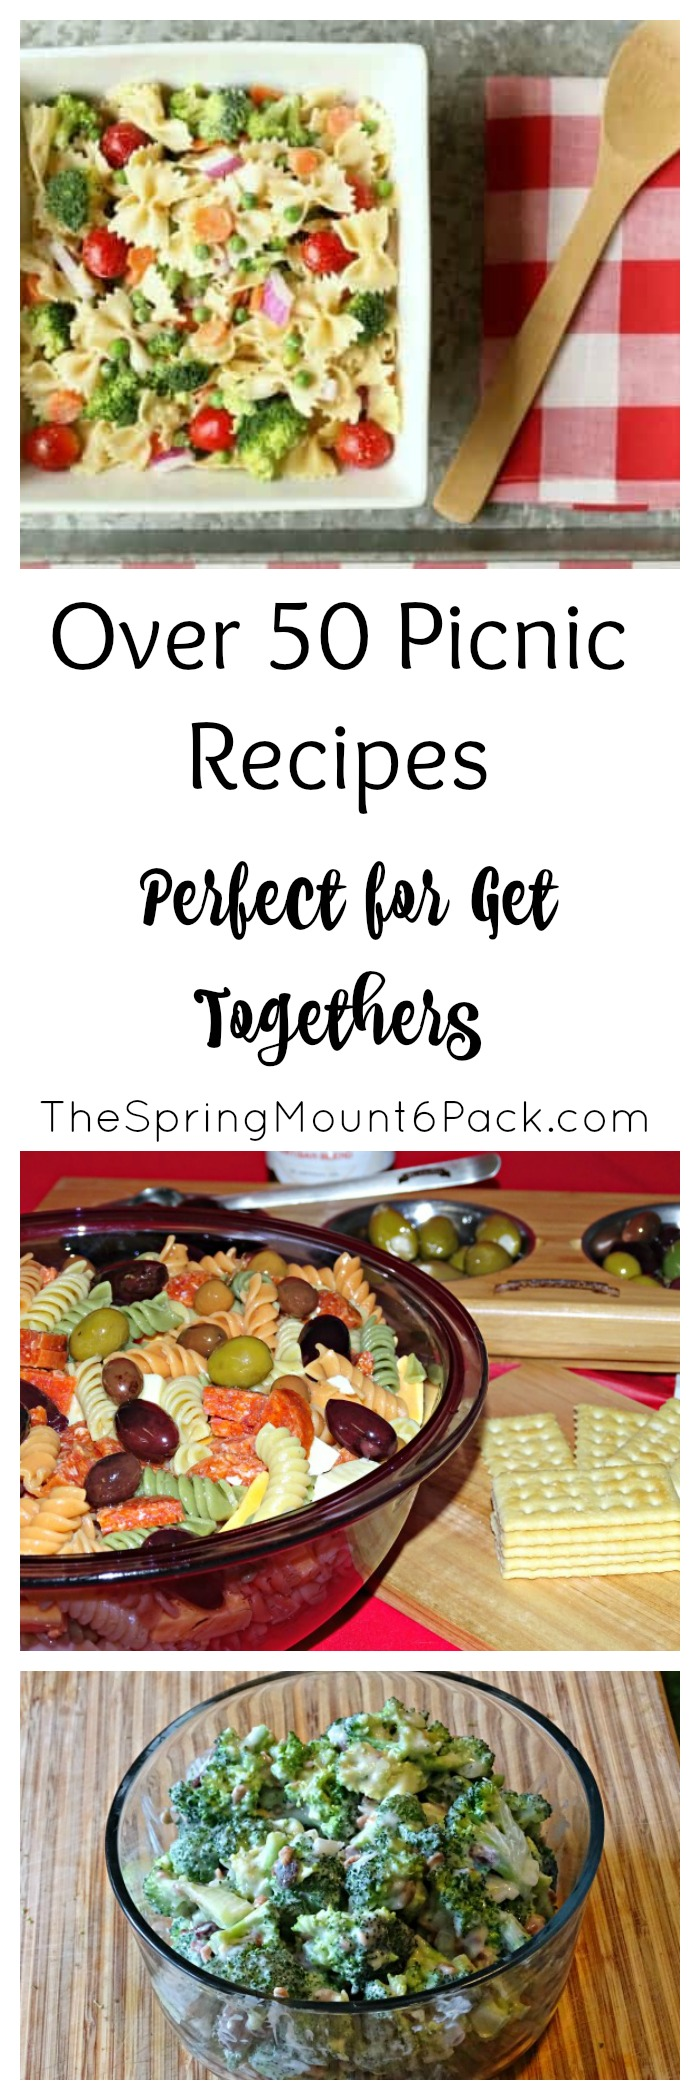 Looking for picnic recipes or a dish to take to a get together? These picnic recipes are perfect for pot luck dinners or a picnic.